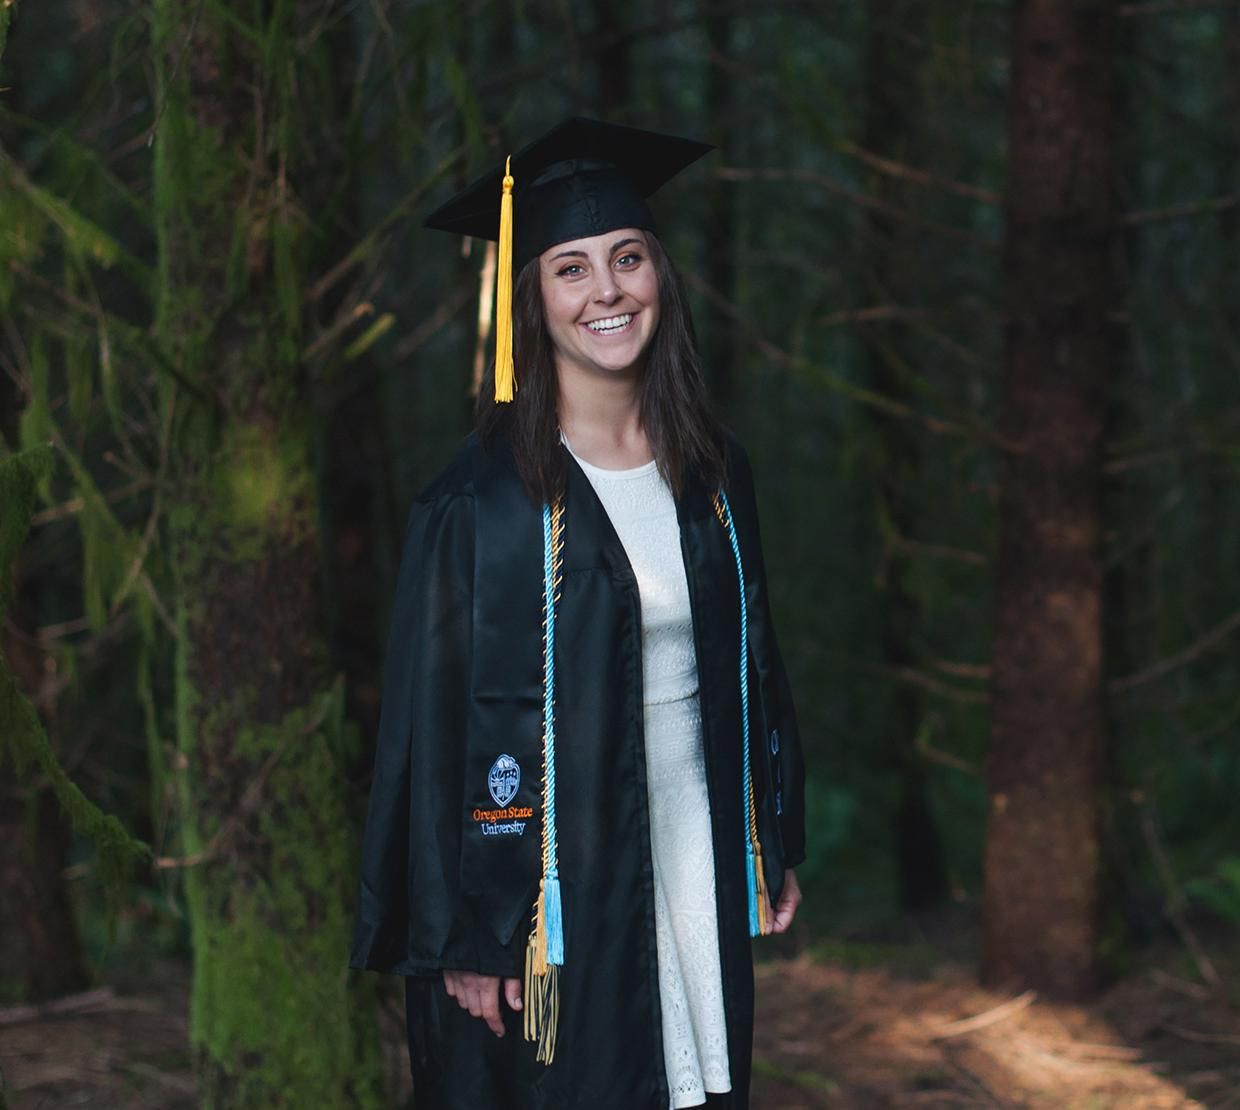 Taylor Robinson in graduation gown, standing in forest